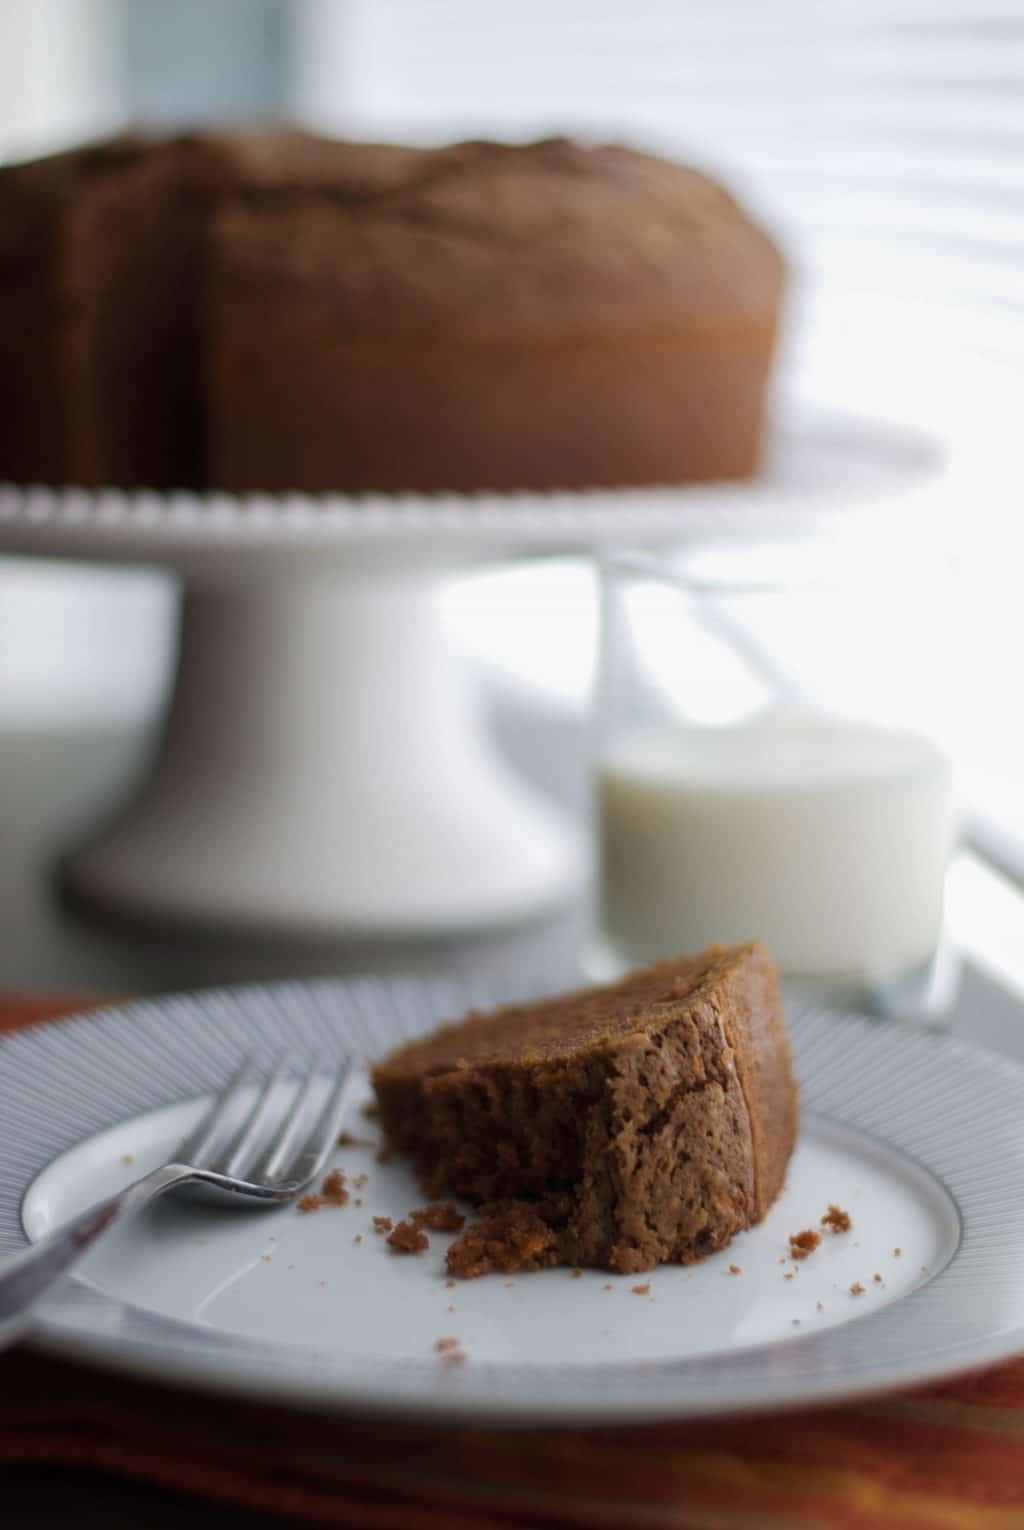 Chocolate Carrot Bundt Cake - Carrie's Experimental Kitchen